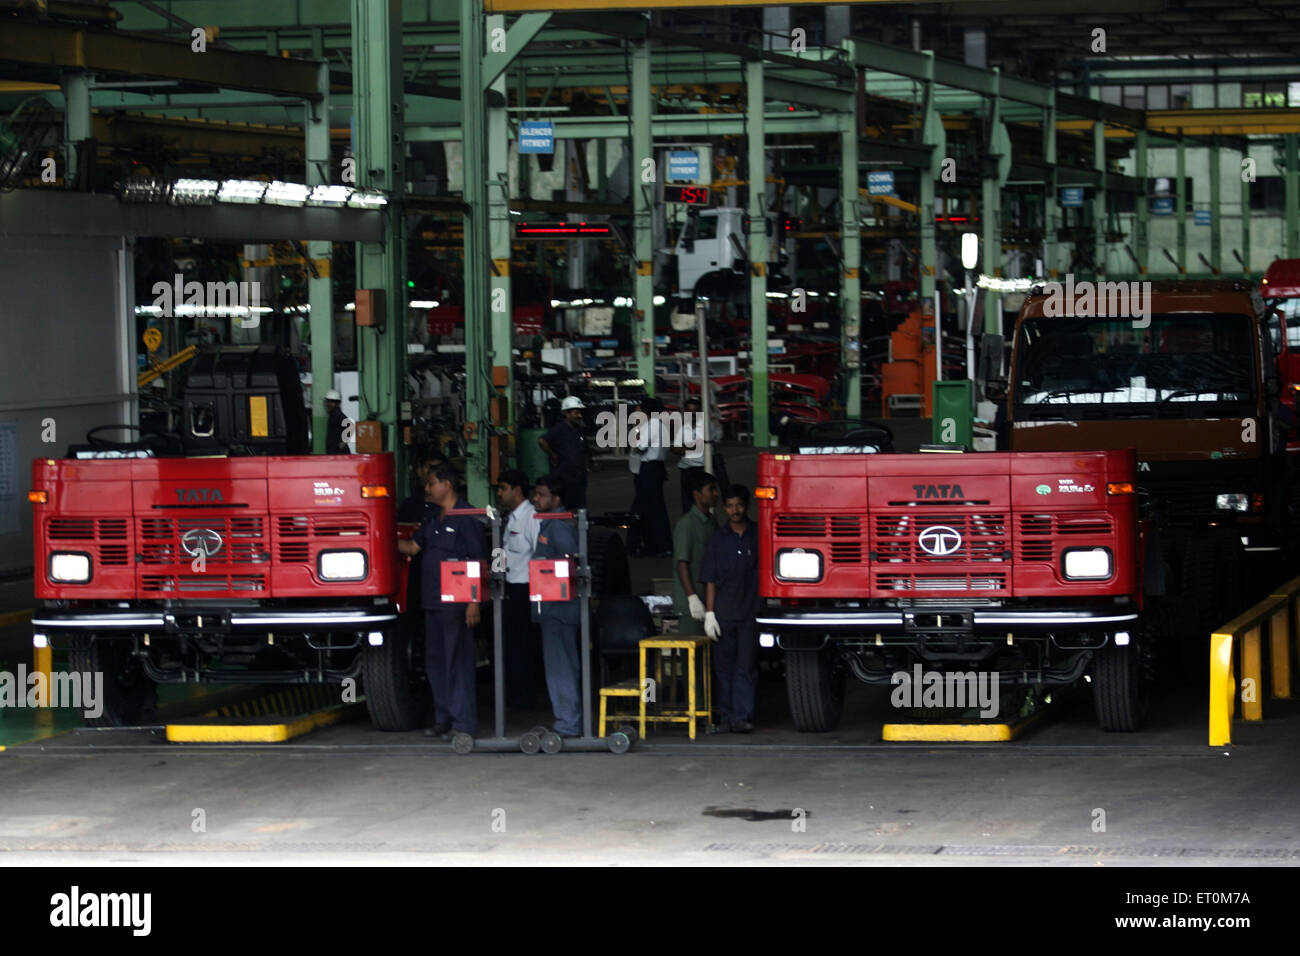 Tata motors trucks chassis work shop at Tata motors plant ; Pimpri near Pune ; Maharashtra ; India - Stock Image